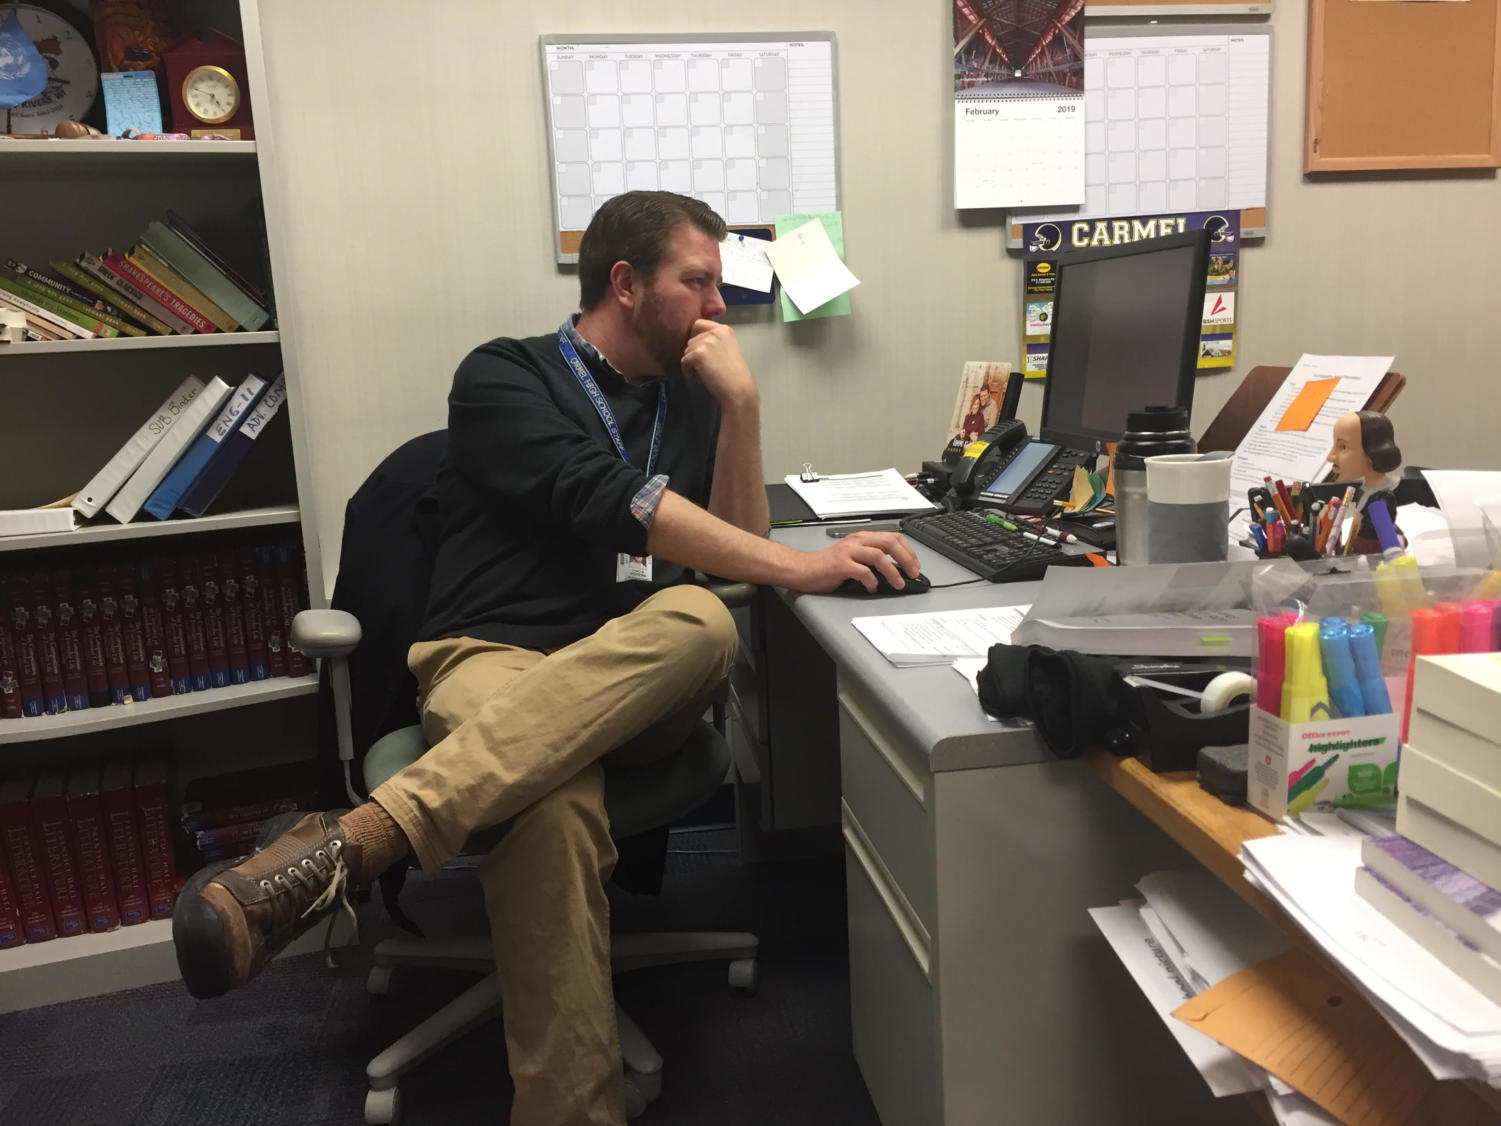 Chad Andrews, Teens with a Choice sponsor, works at his desk after school. He said the club has slowed down this semester.